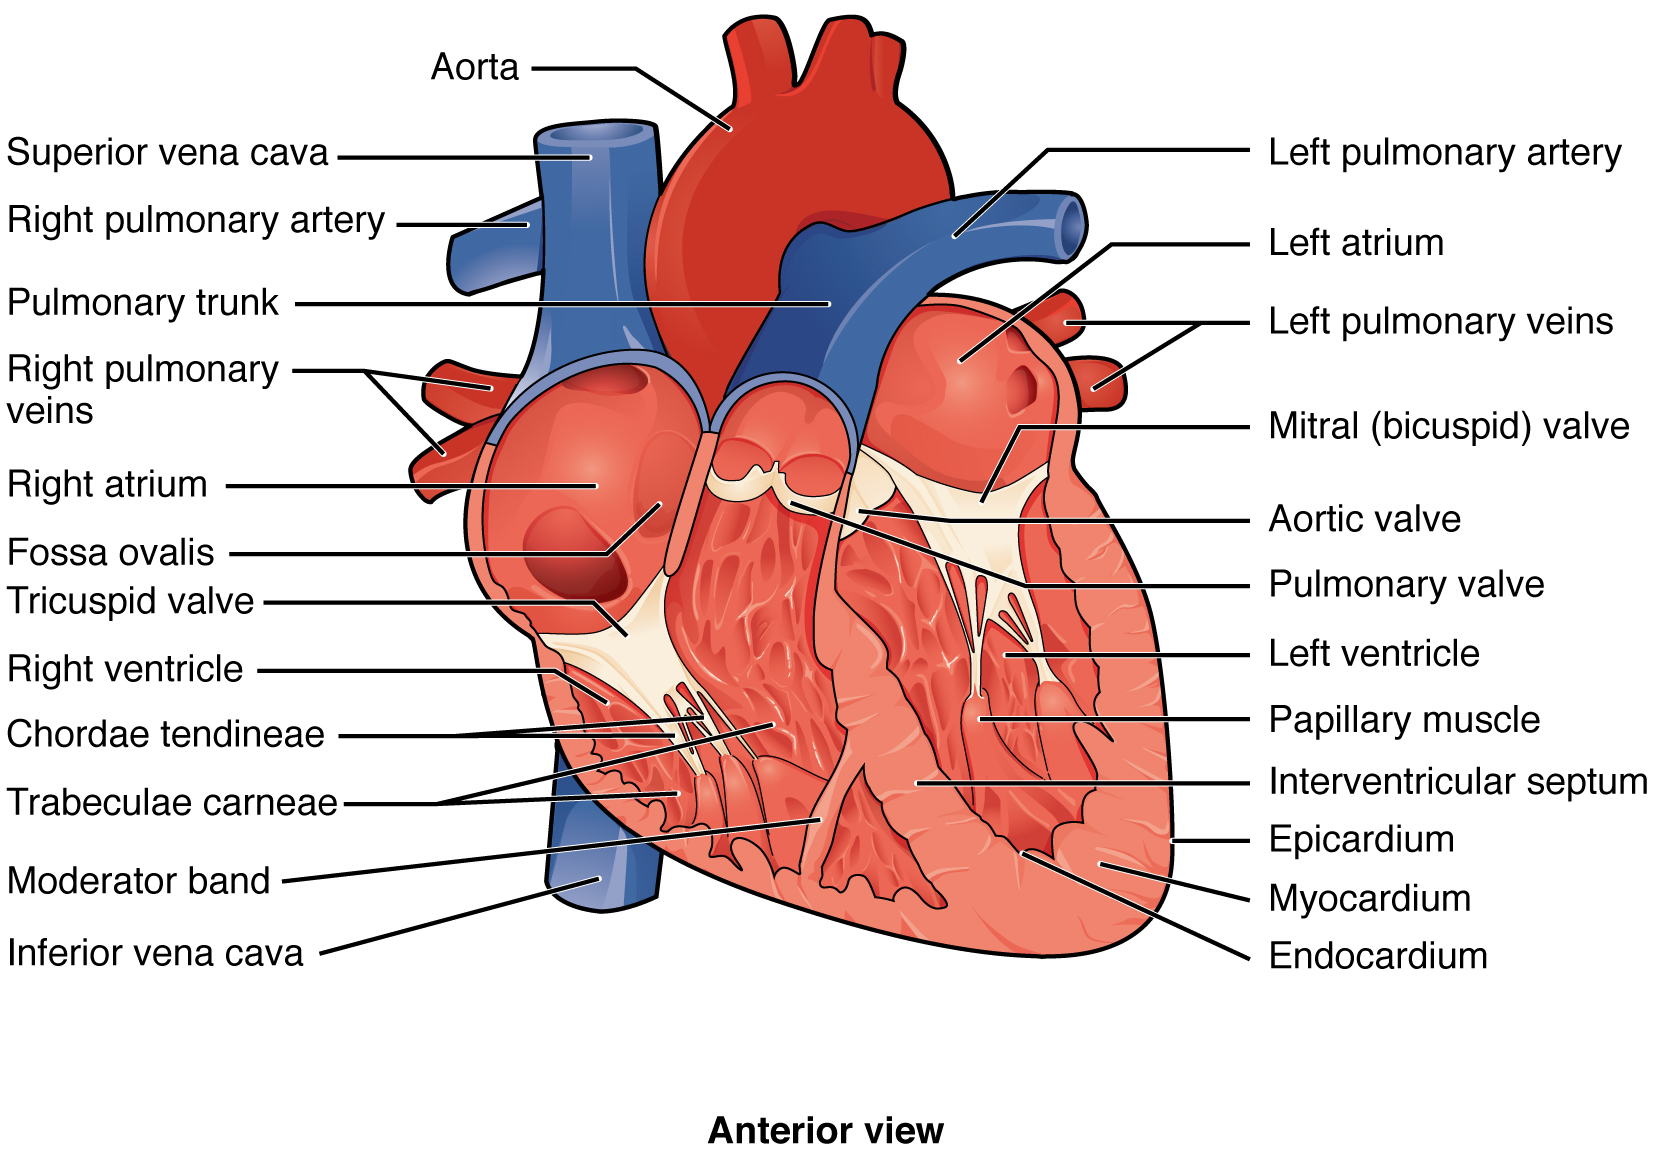 Uga anatomy and physiology 2 lab manual figure 199 internal structures of the heart ccuart Images